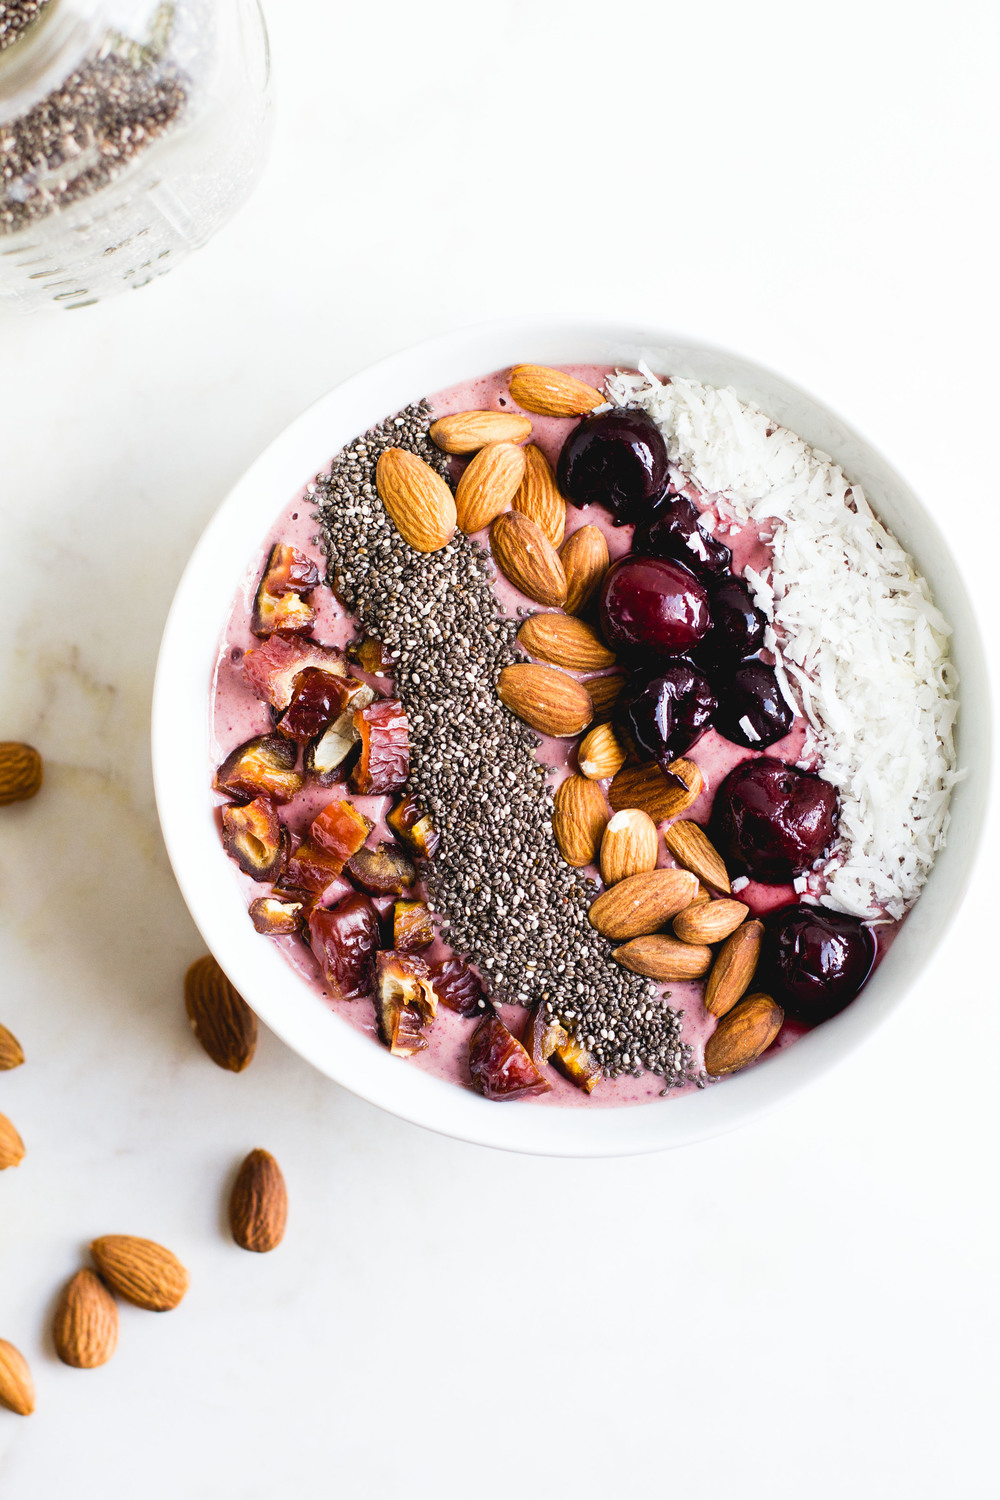 Cherry Almond Smoothie Bowl | Sarah J. Hauser